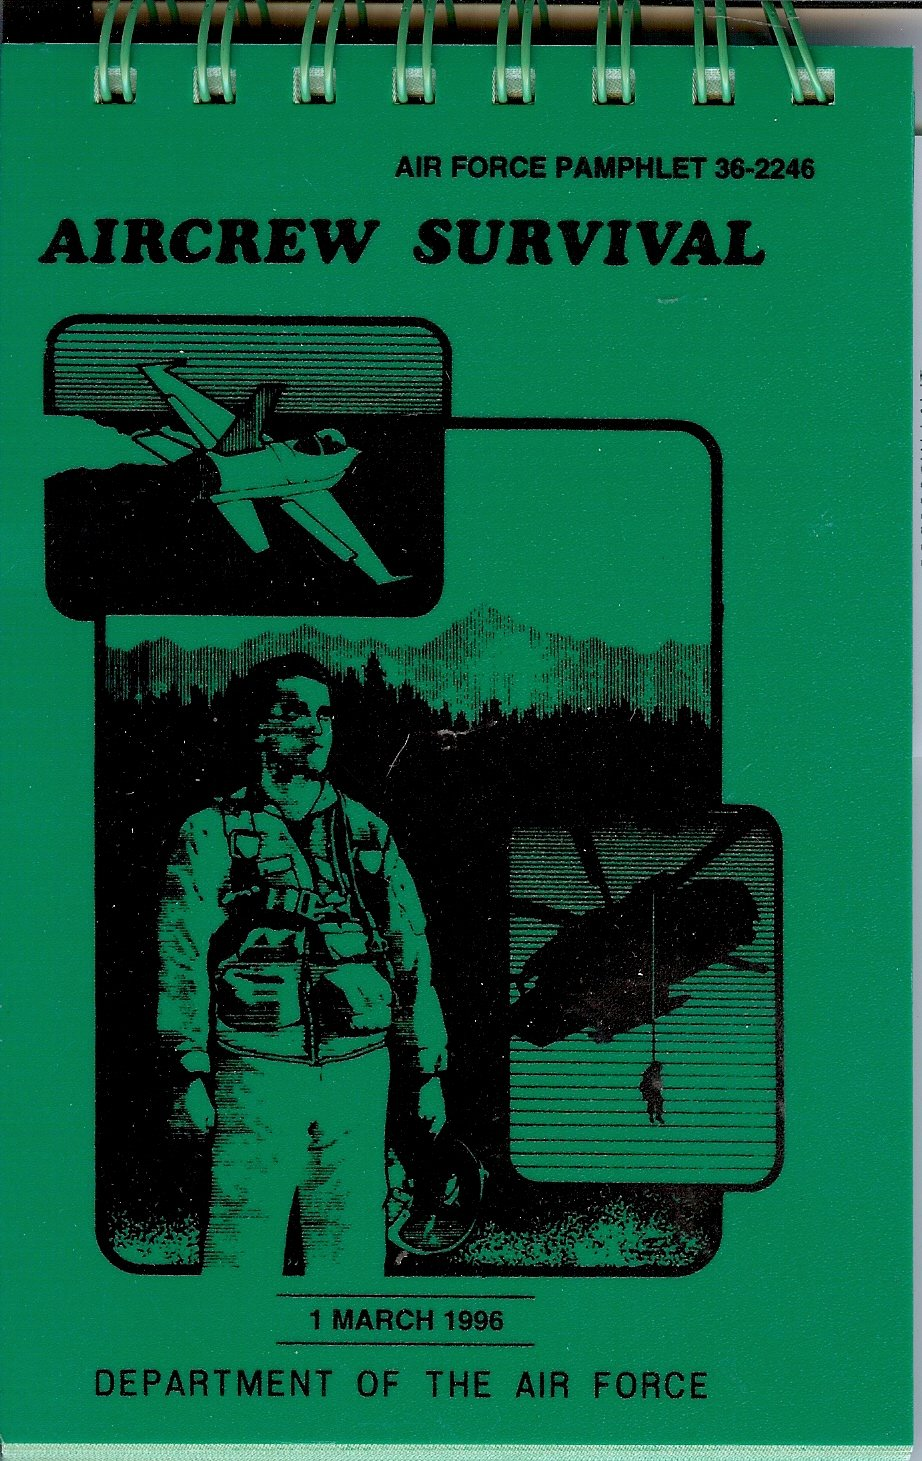 Aircrew Survival Air Force Pamphlet 36-2246: Department of the Air Force:  9780160485619: Amazon.com: Books